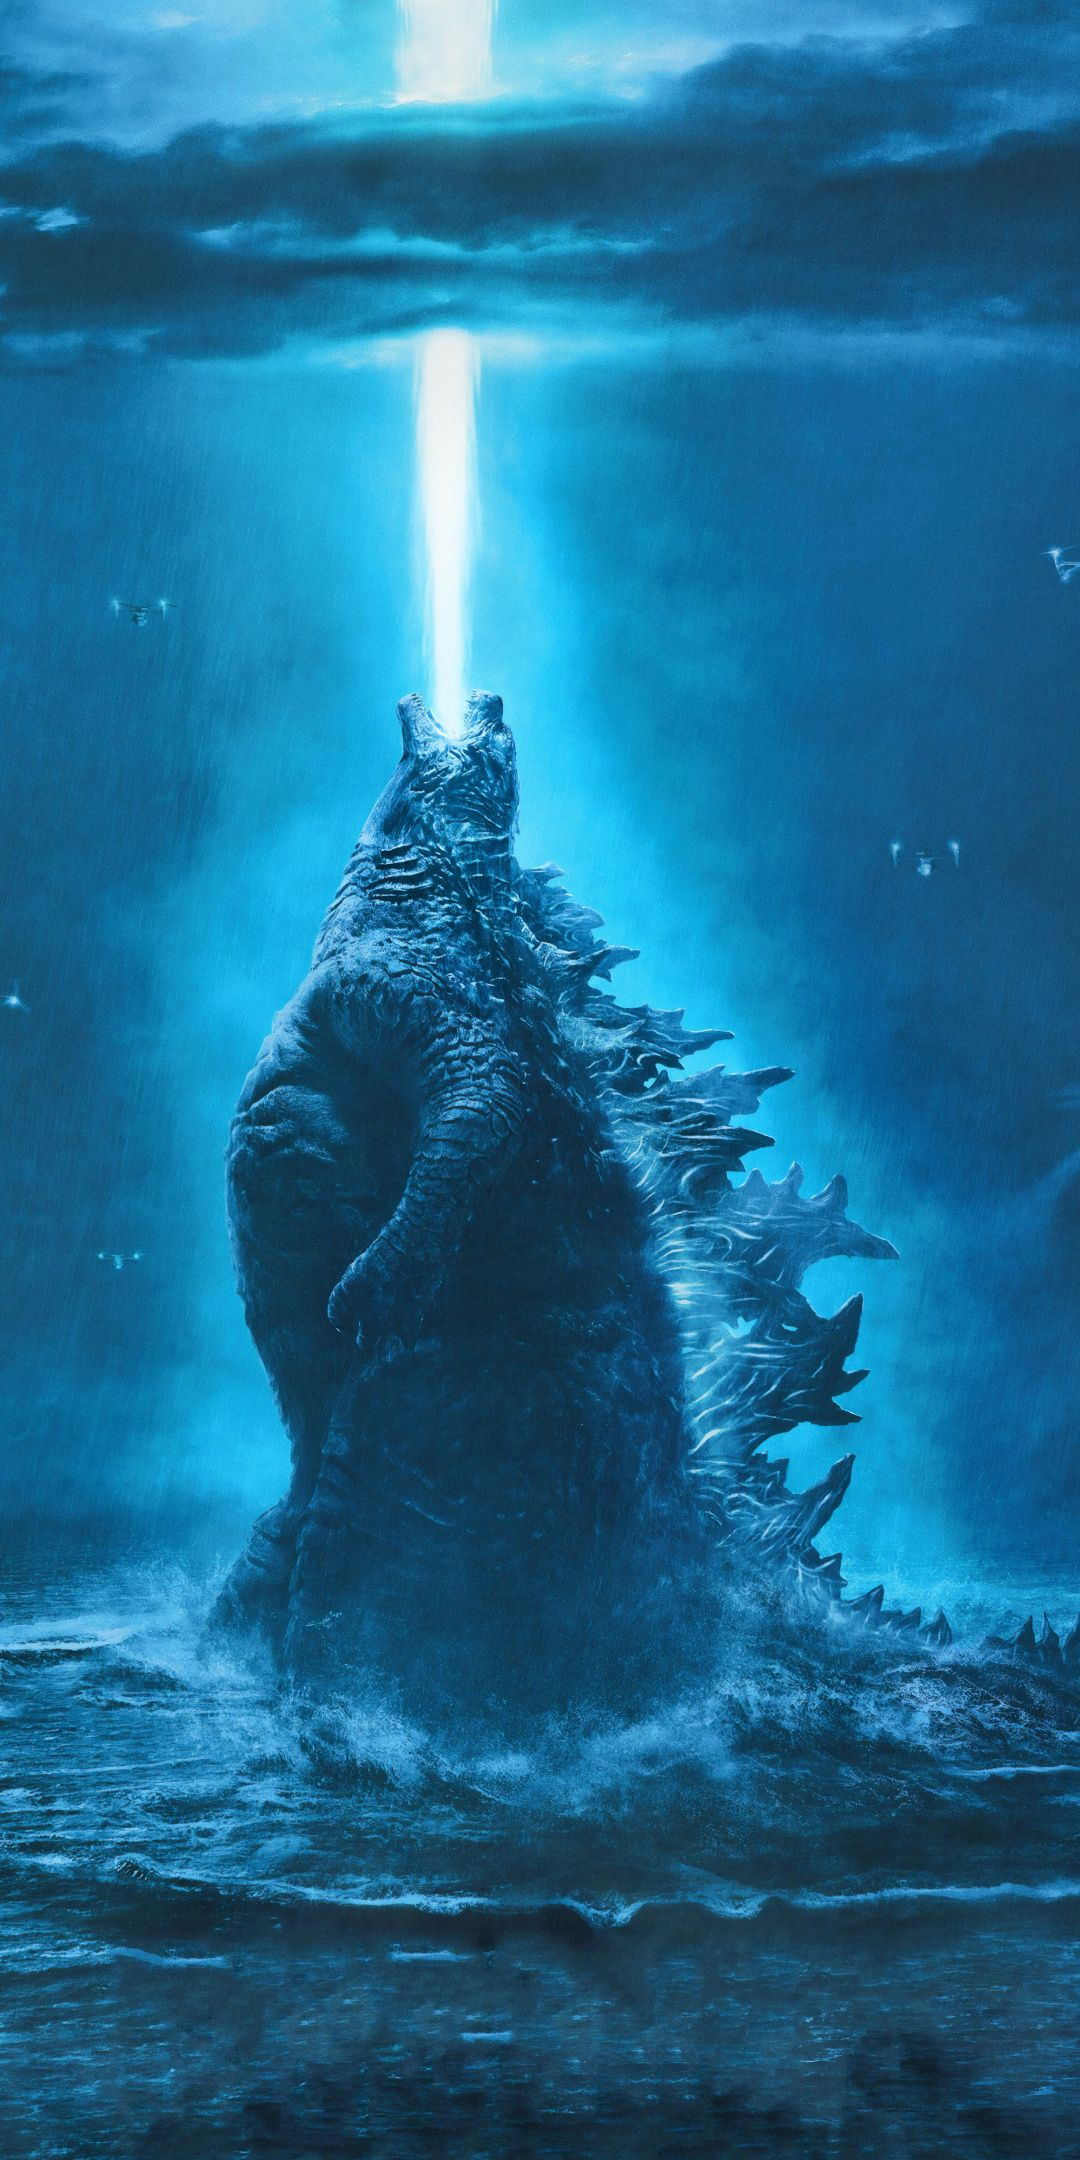 1080x2160 Godzilla King of The Monsters movie 2019 Wallpaper 1080x2160